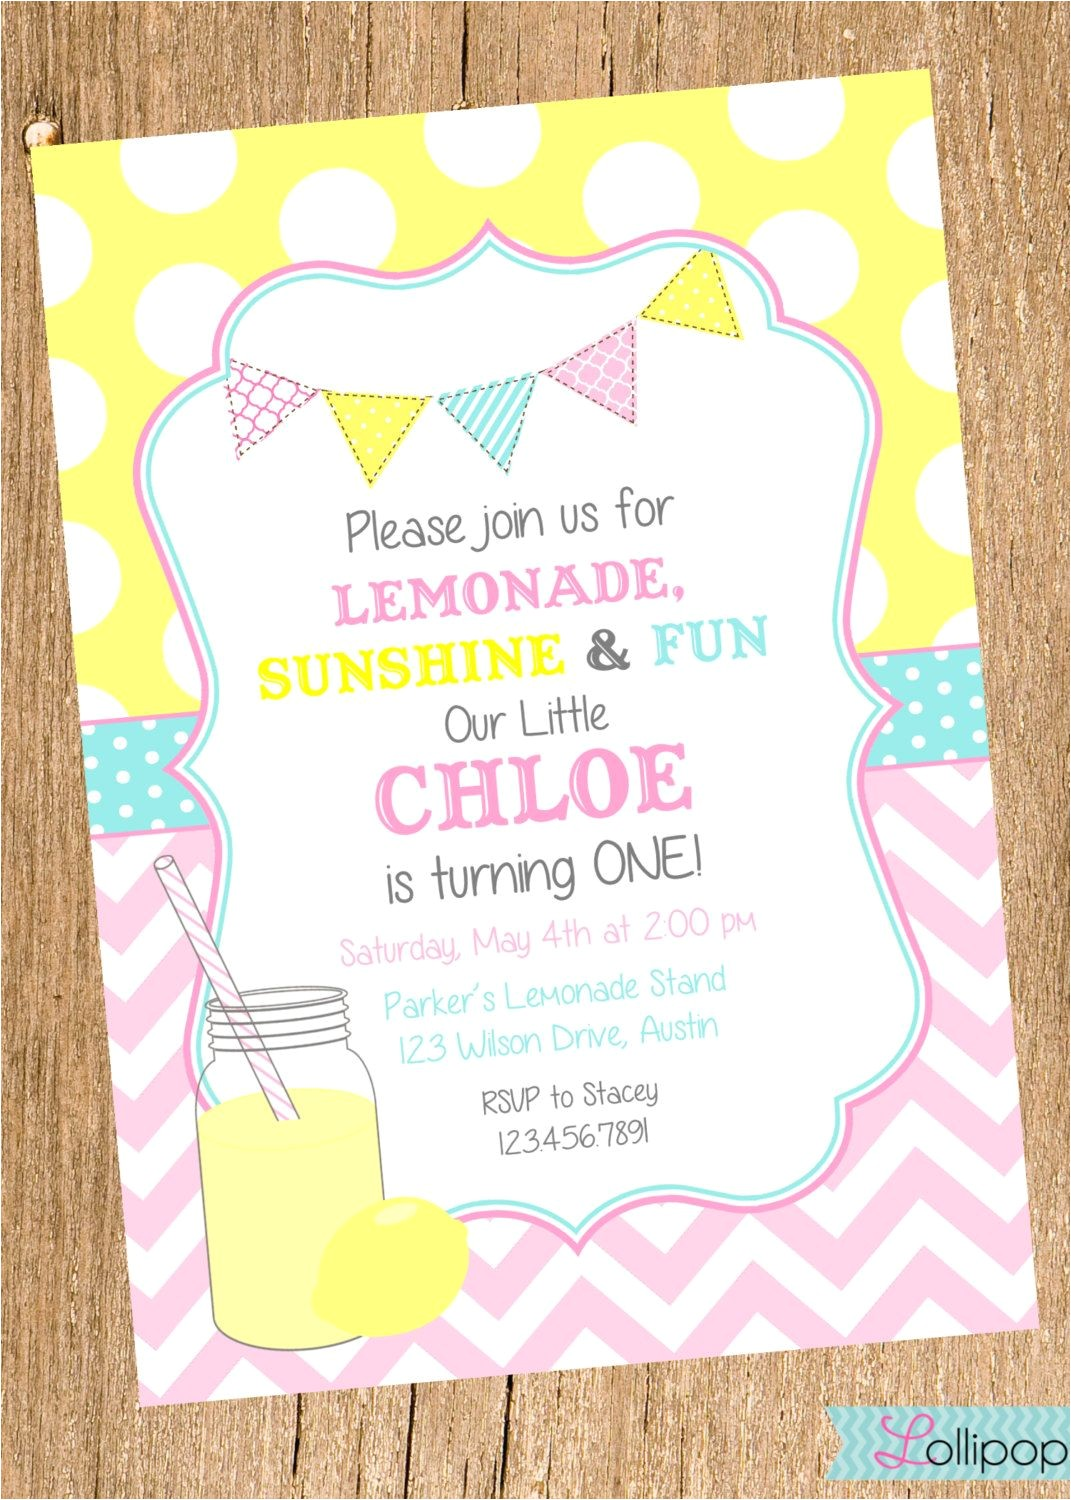 Lemonade Birthday Party Invitations Vintage Lemonade Printable Birthday Invitation Vintage